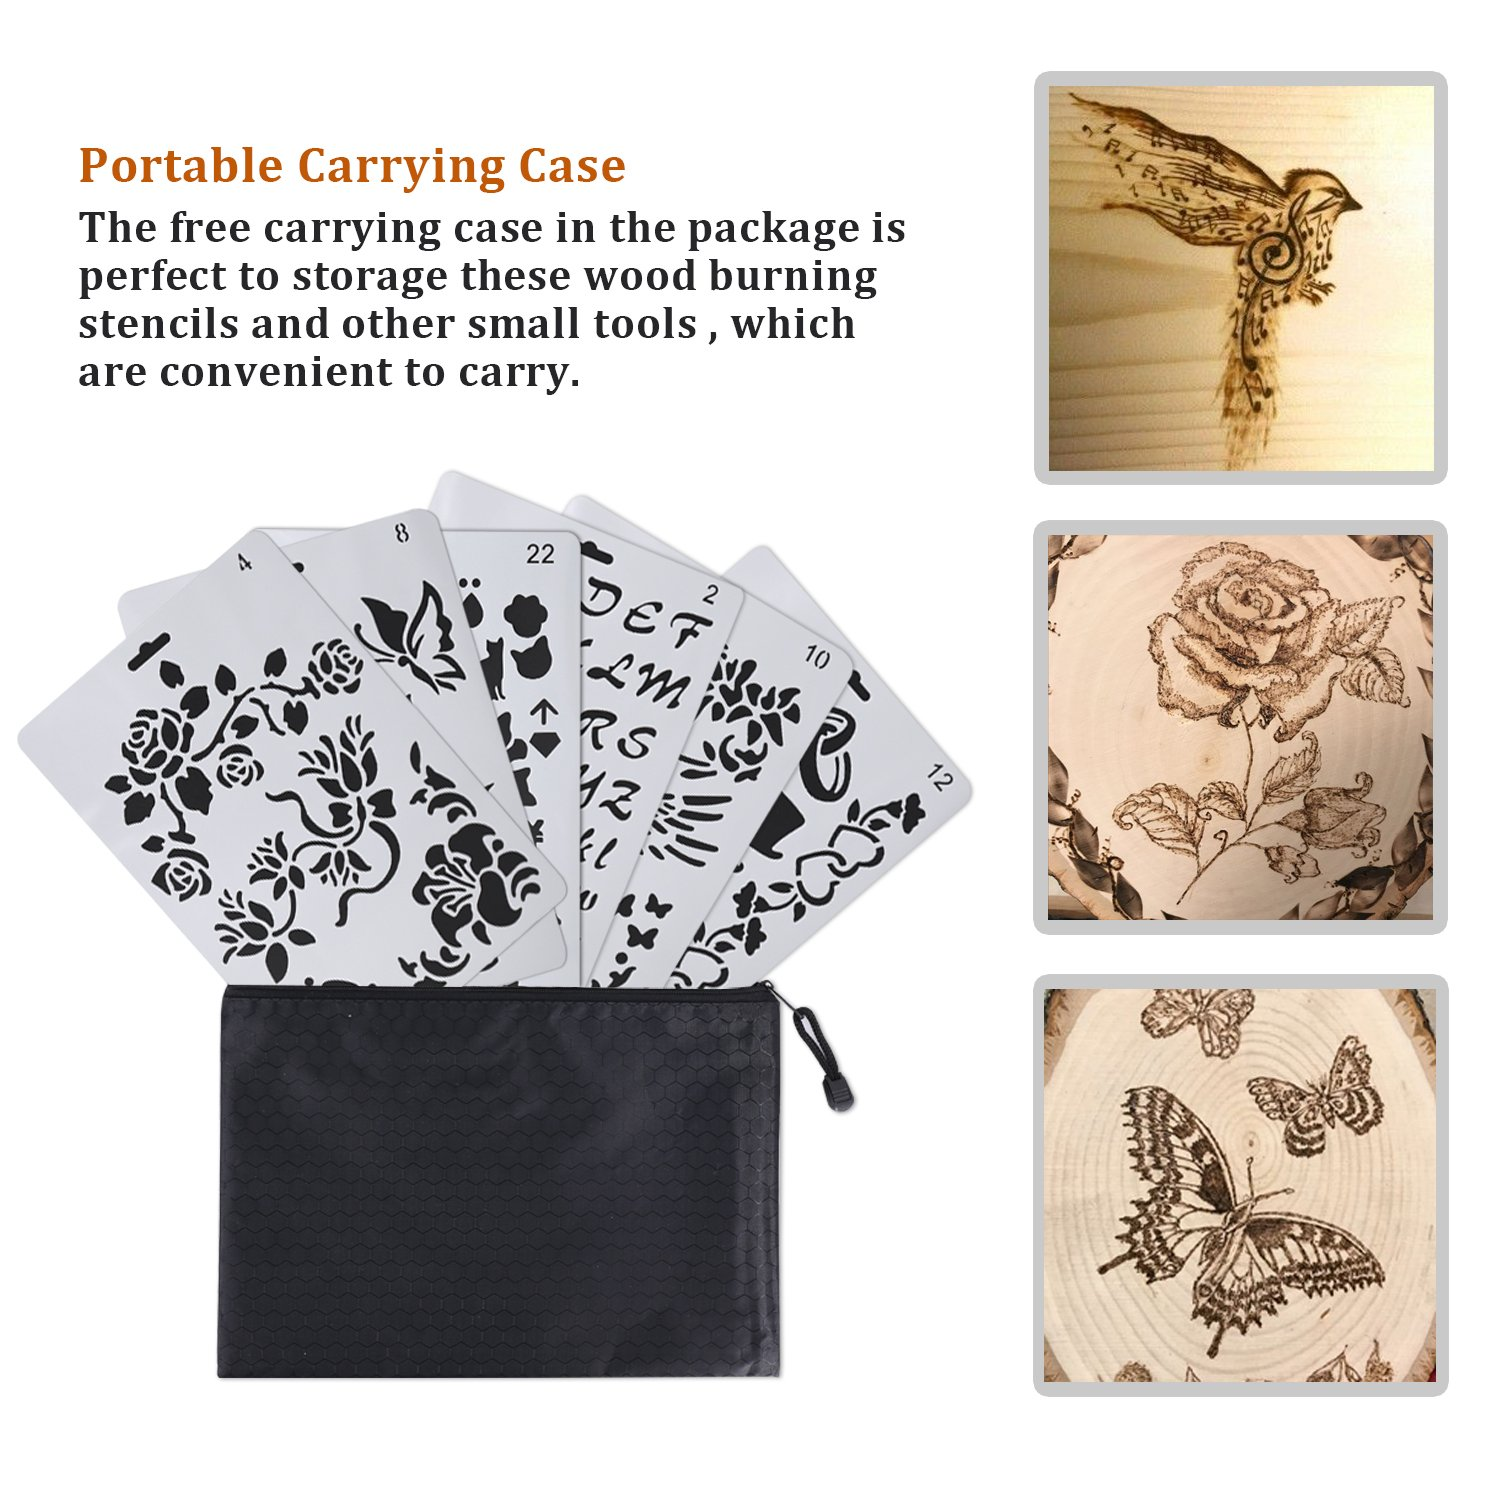 6 pcs wood burning stencils pyrography plastic templates set for wood burningcarving with letters number